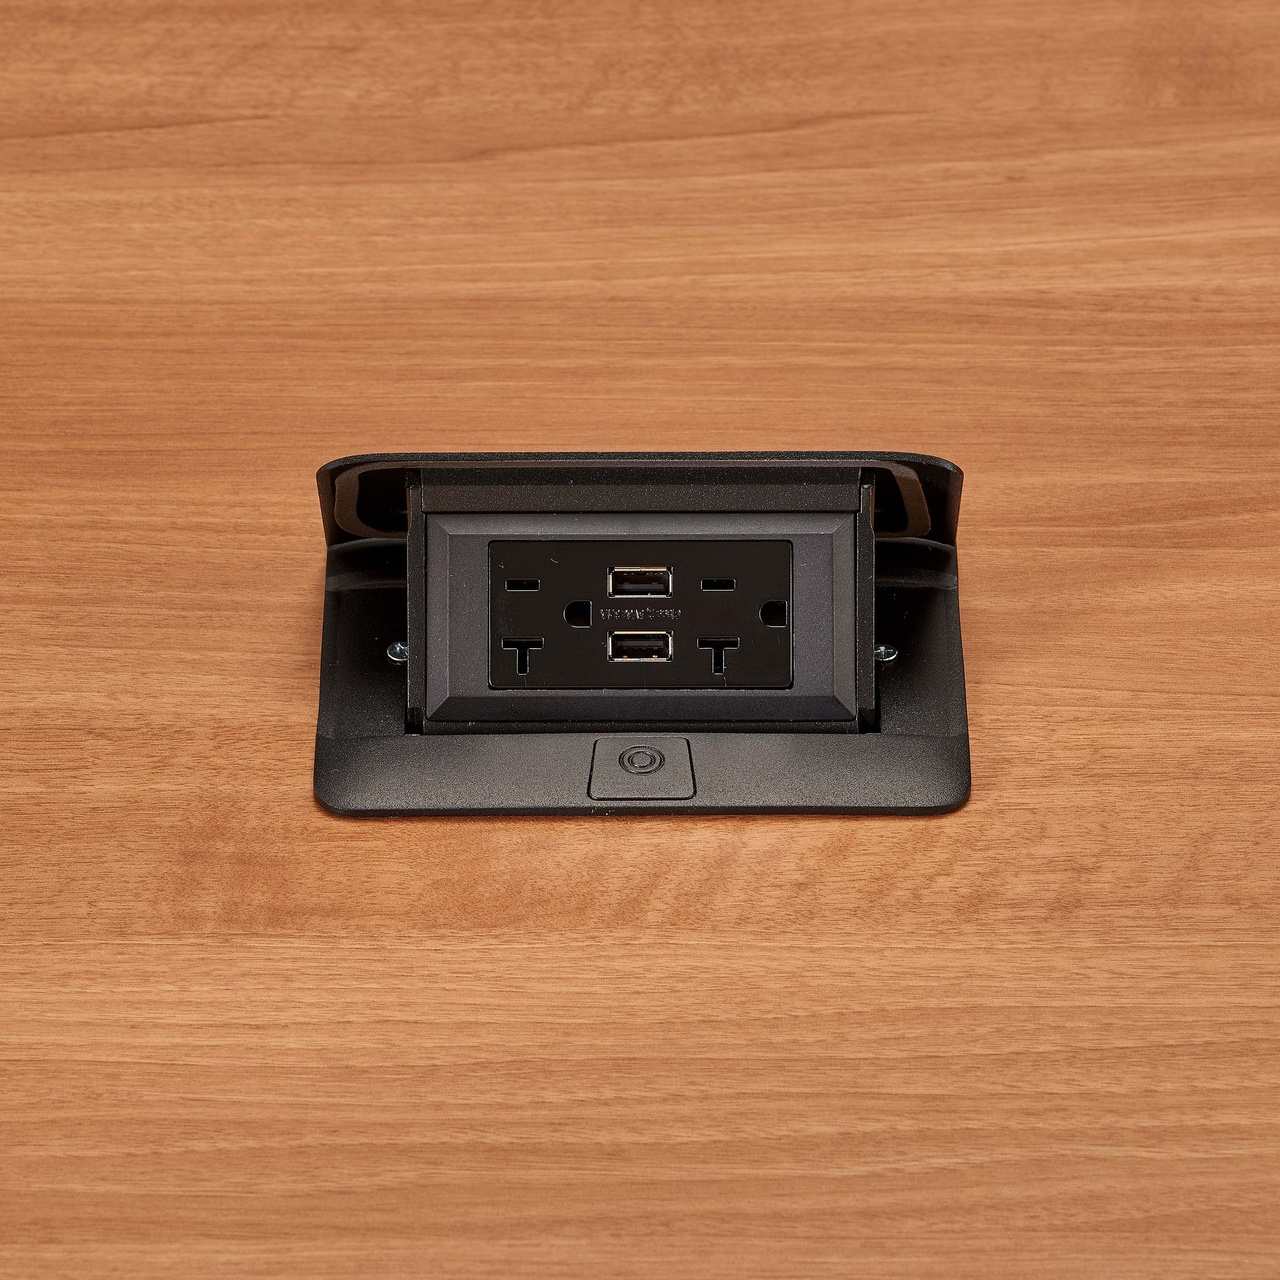 deQuorum Flip-Up Table Box 1-Gang 20A recep 3.1A USB, black finish-open view, DQFP20UBK